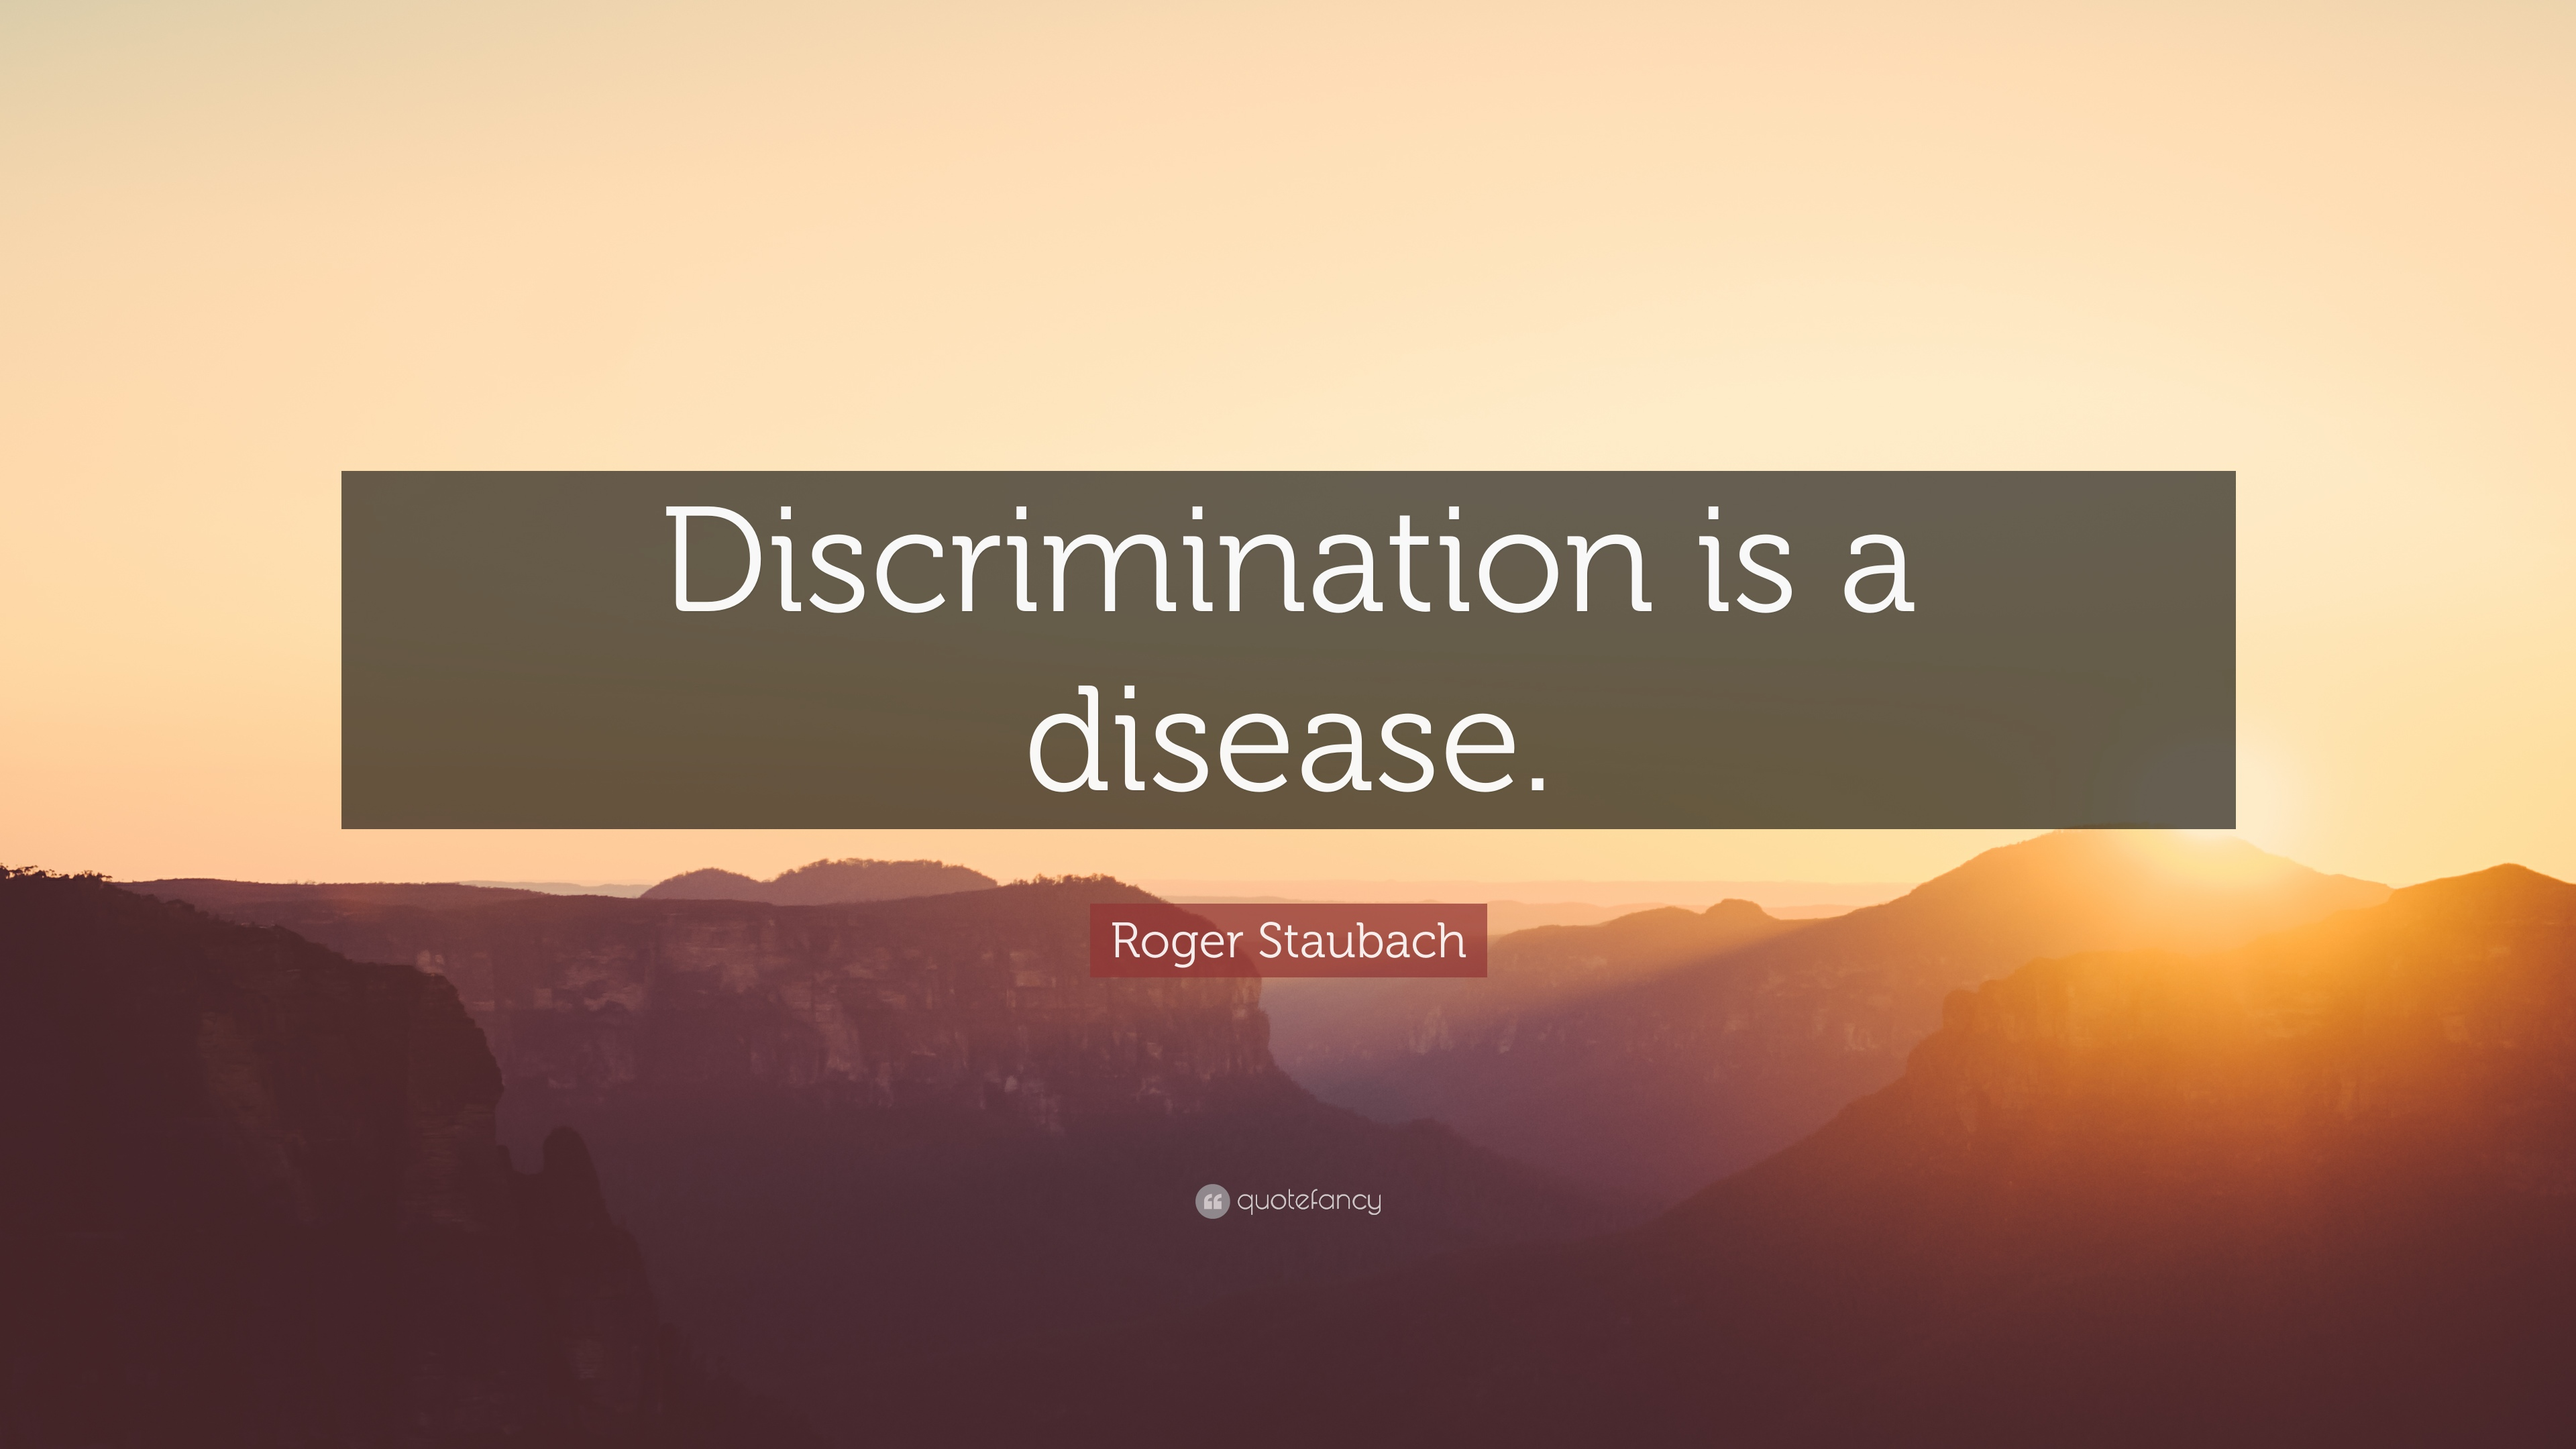 "Discrimination Quotes Awesome Roger Staubach Quote ""Discrimination Is A Disease."" 12"